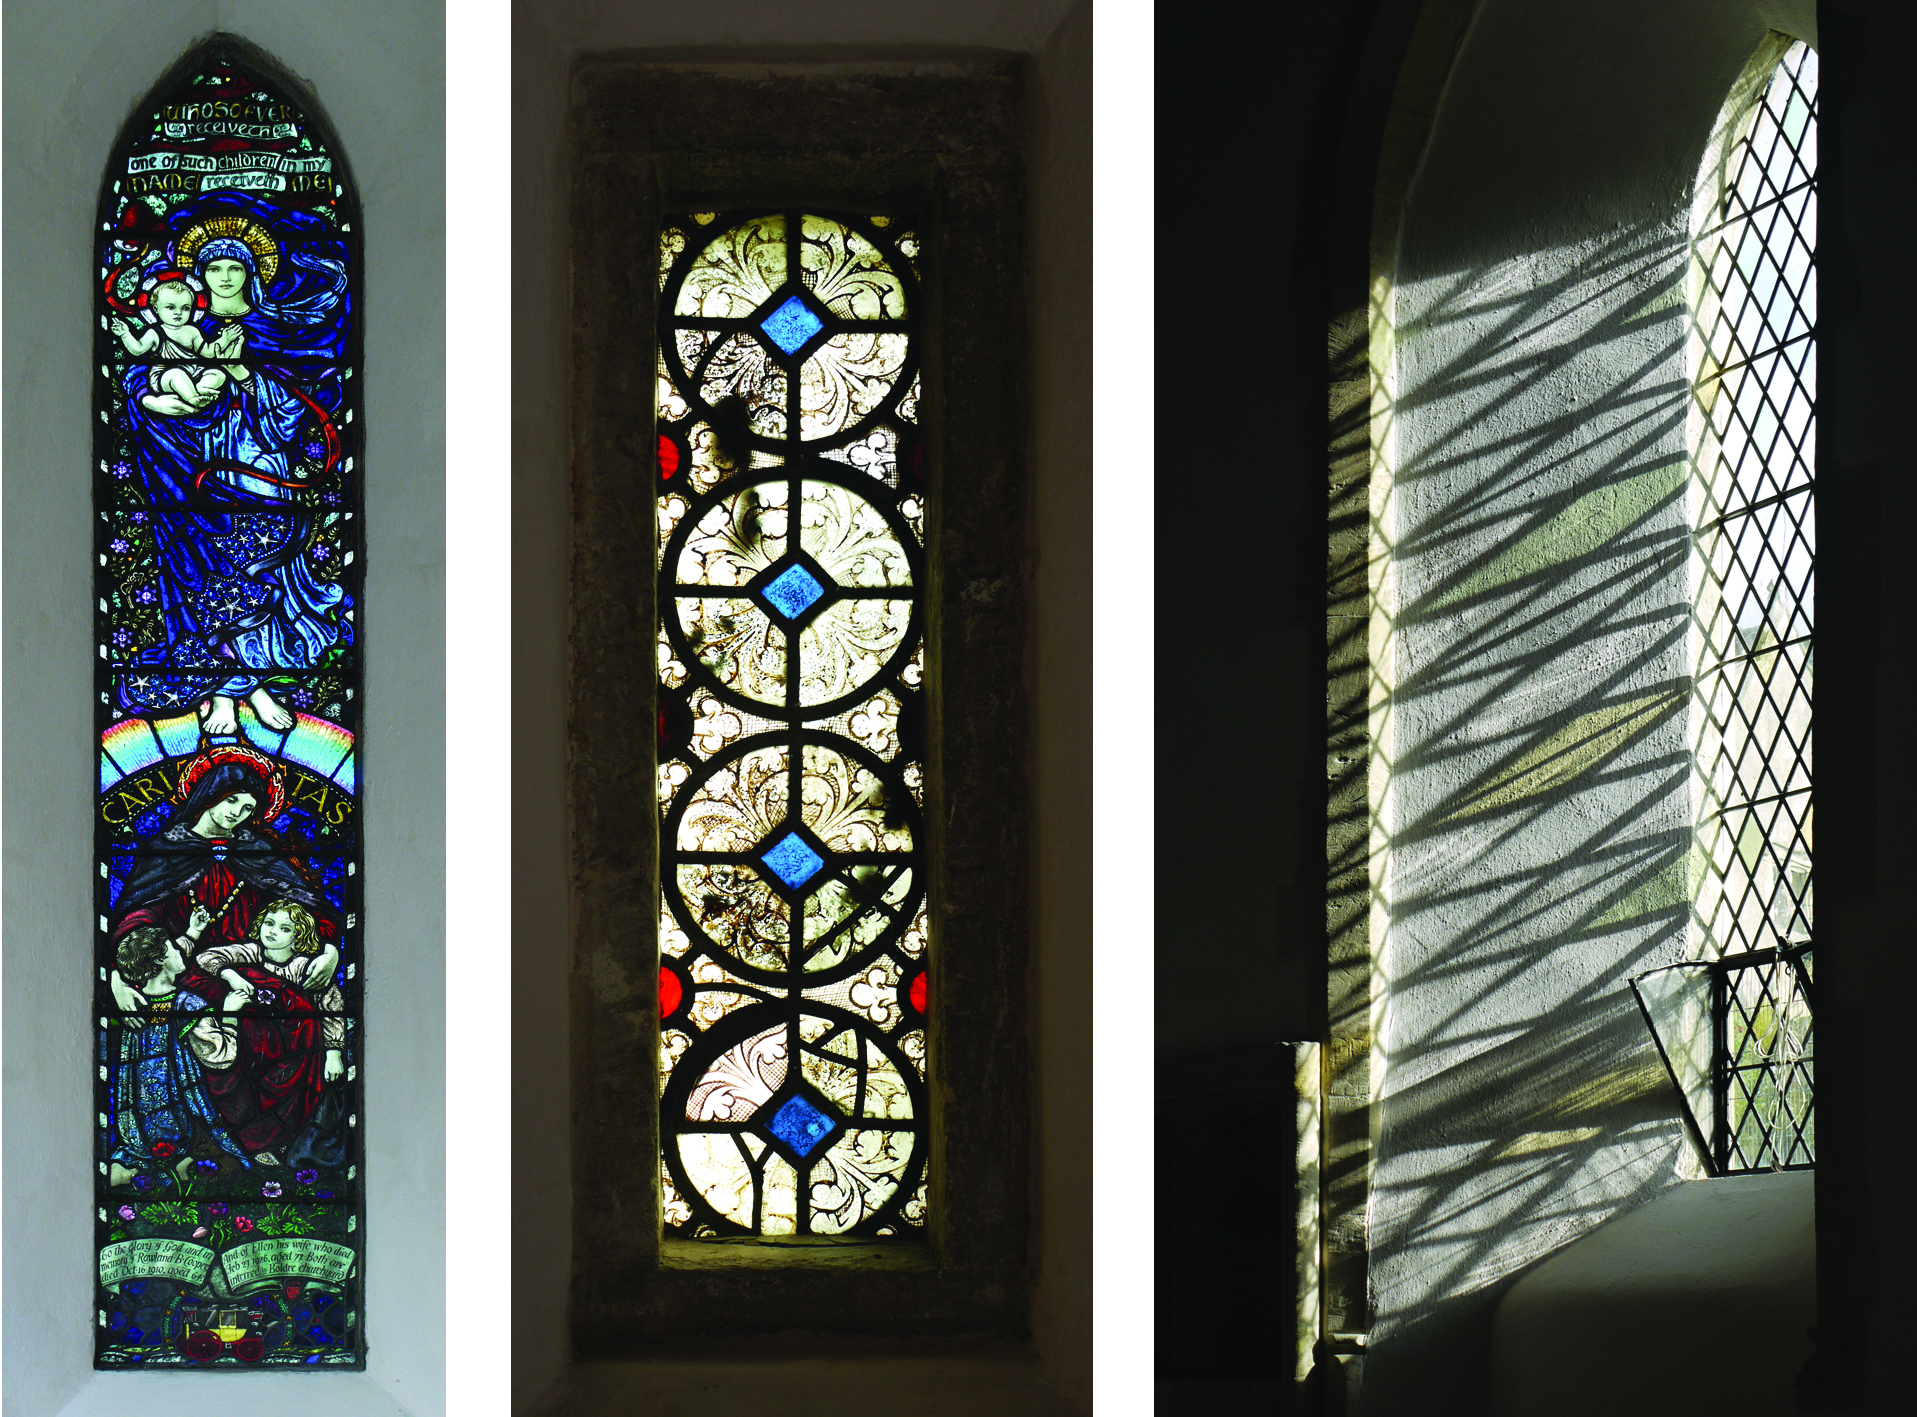 Inside St. Mary's, Bibury: window by Karl Parsons 1927, C13th grisaille glass, windows added to church in C15th.